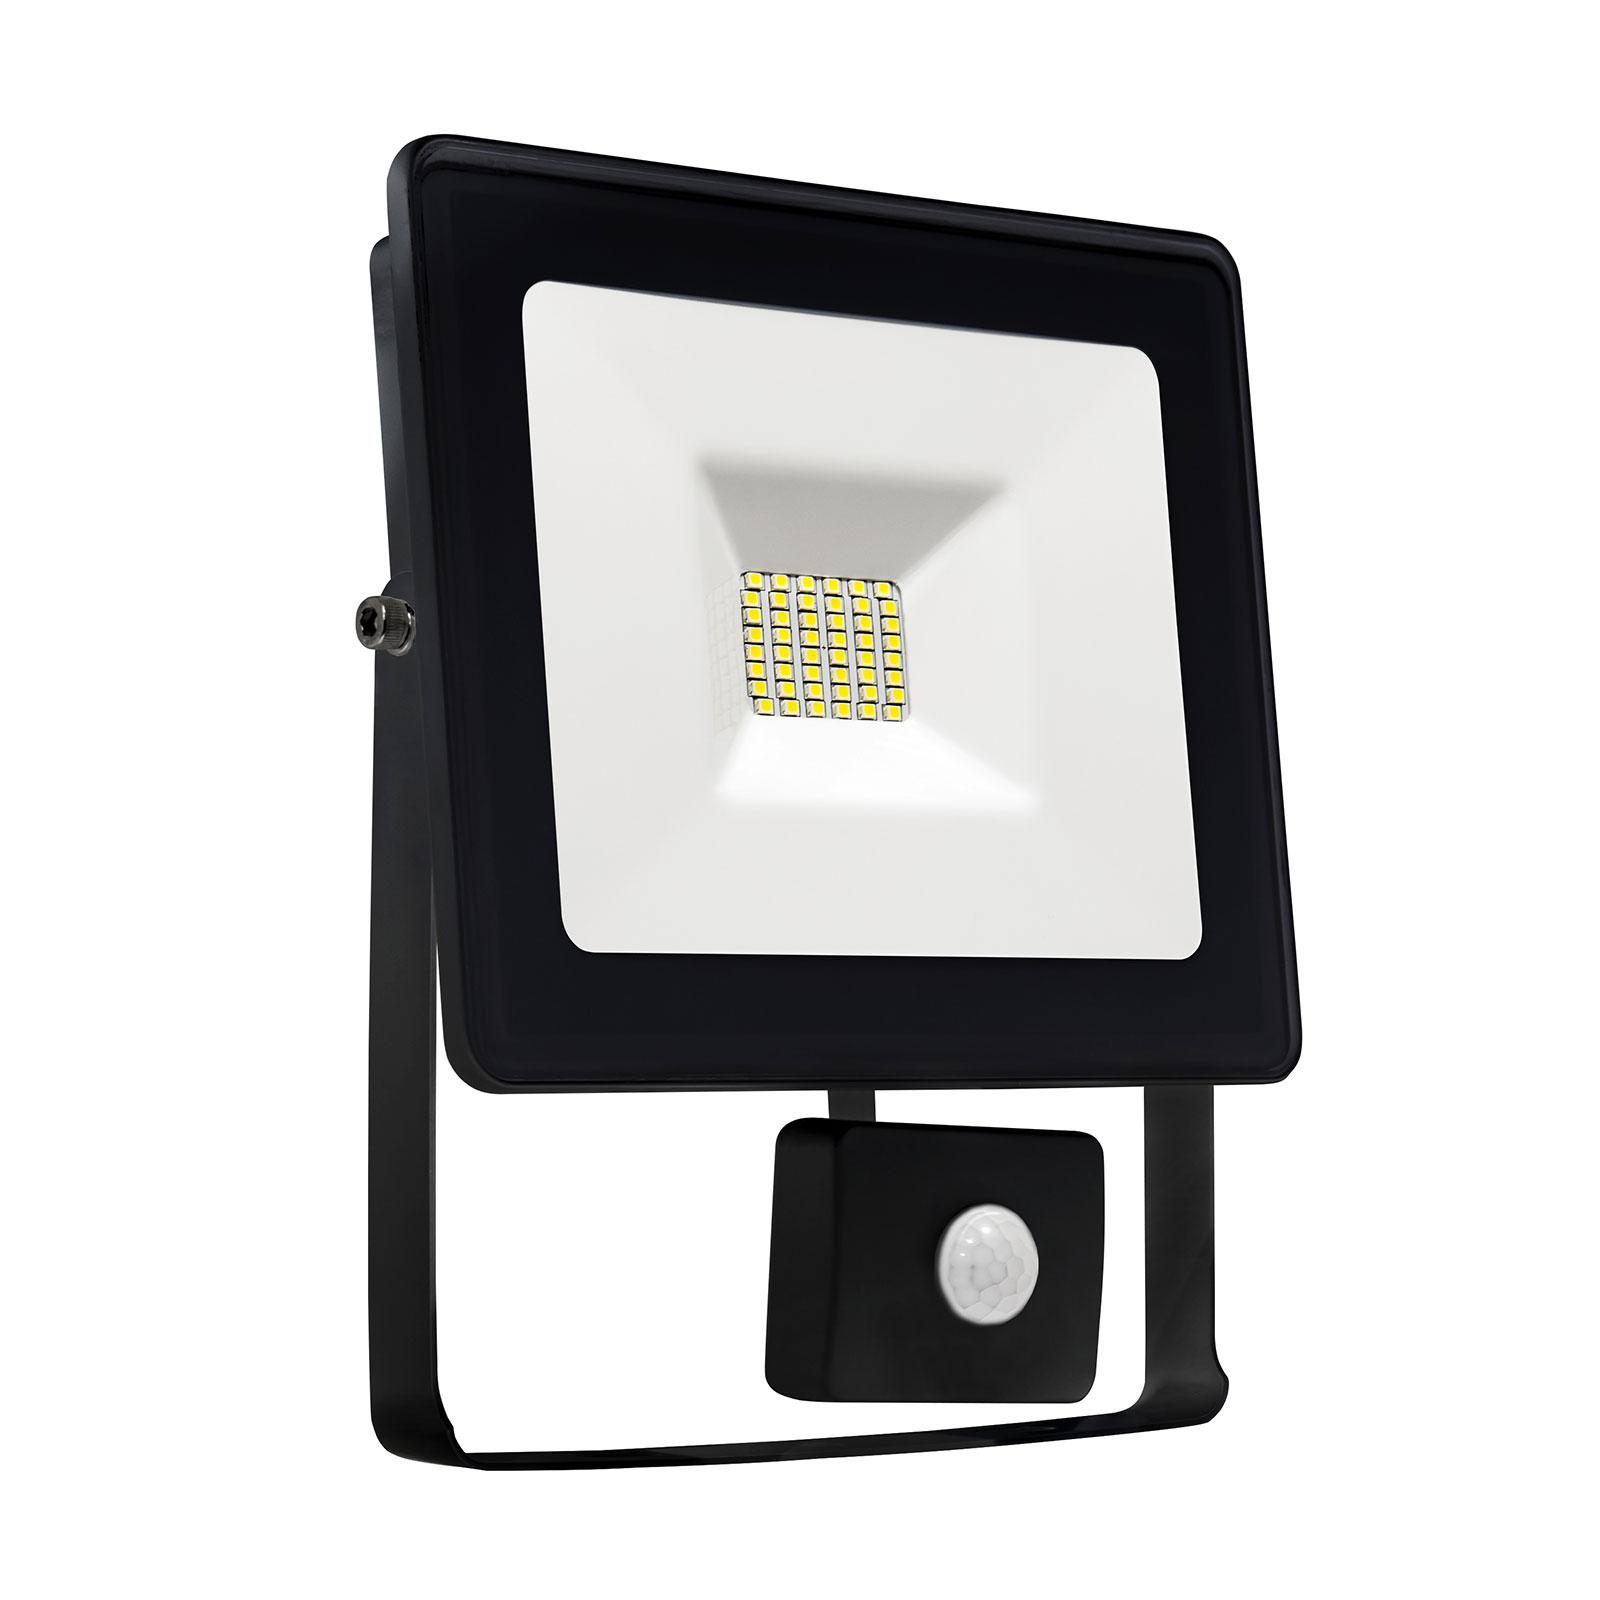 NOCTIS LUX SMD 120st 230V 10W IP44 WW WALLWASHER black with sensor